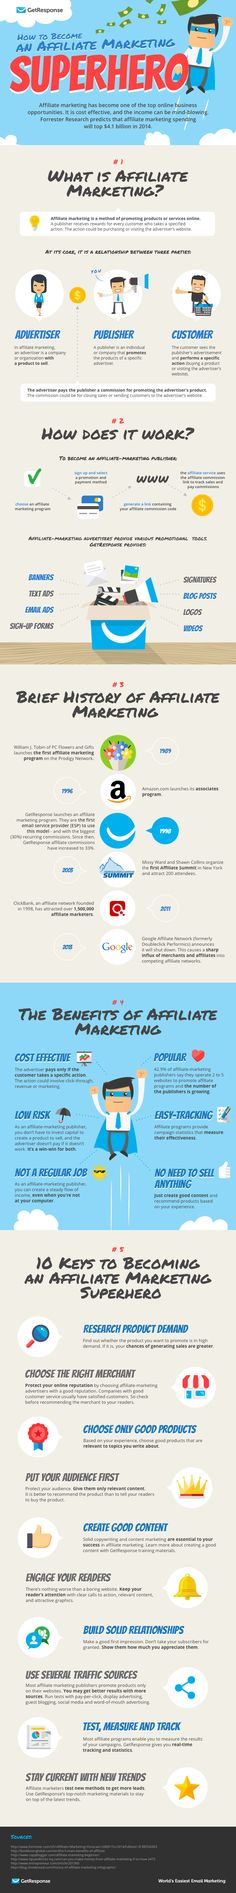 Do you know what affiliate marketing is? Check out an infographic that is sure to not only tell you what it is, but how to become the best at it!